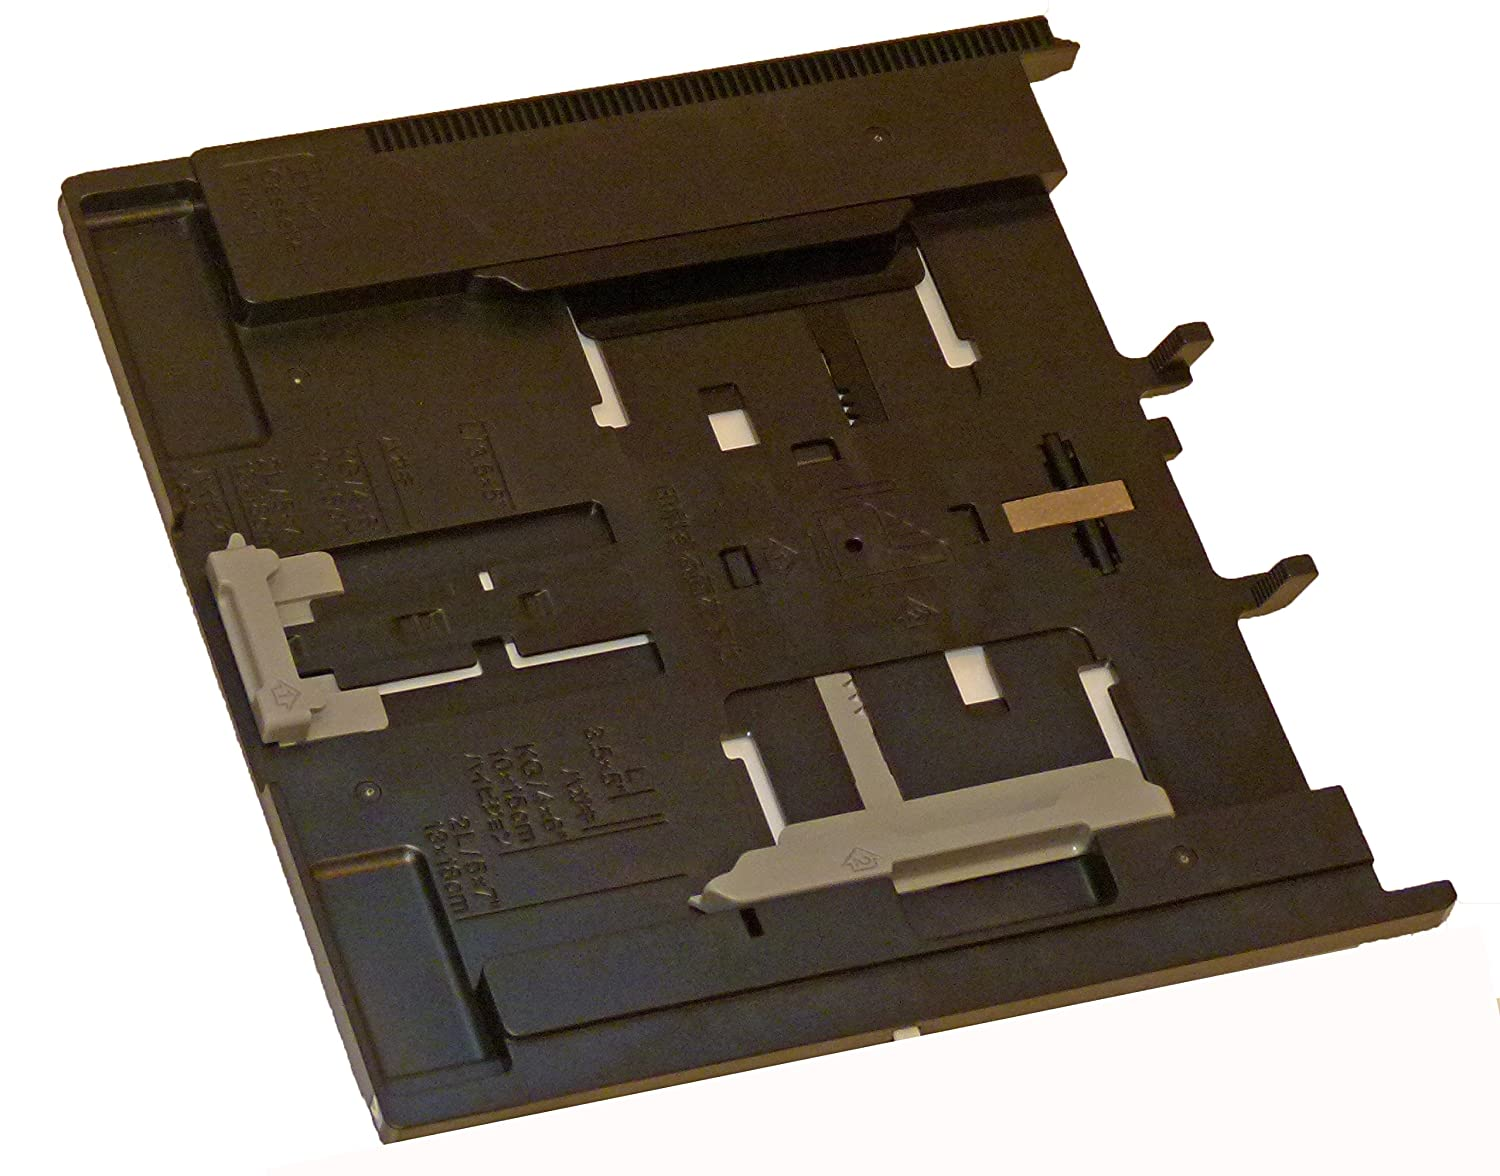 OEM Epson Cassette 1 Photo Paper Tray Assembly Specifically For: XP-850, XP-860, XP-950, XP-601, XP-615, XP-621 LYSB01D825BUU-ELECTRNCS